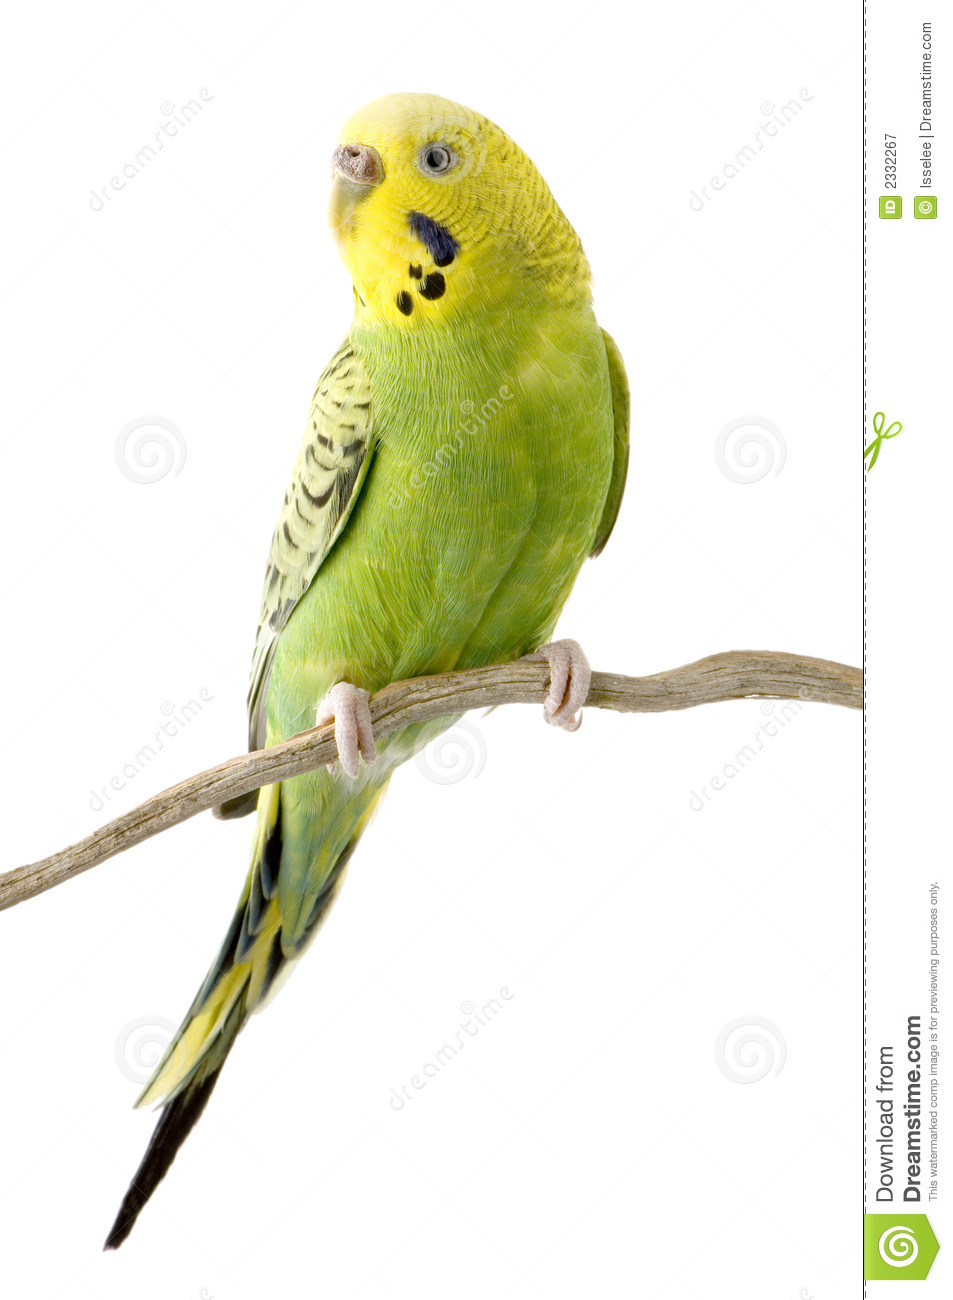 Yellow And Green Living Room Decor: Yellow And Green Budgie Stock Image. Image Of Animal, Wing